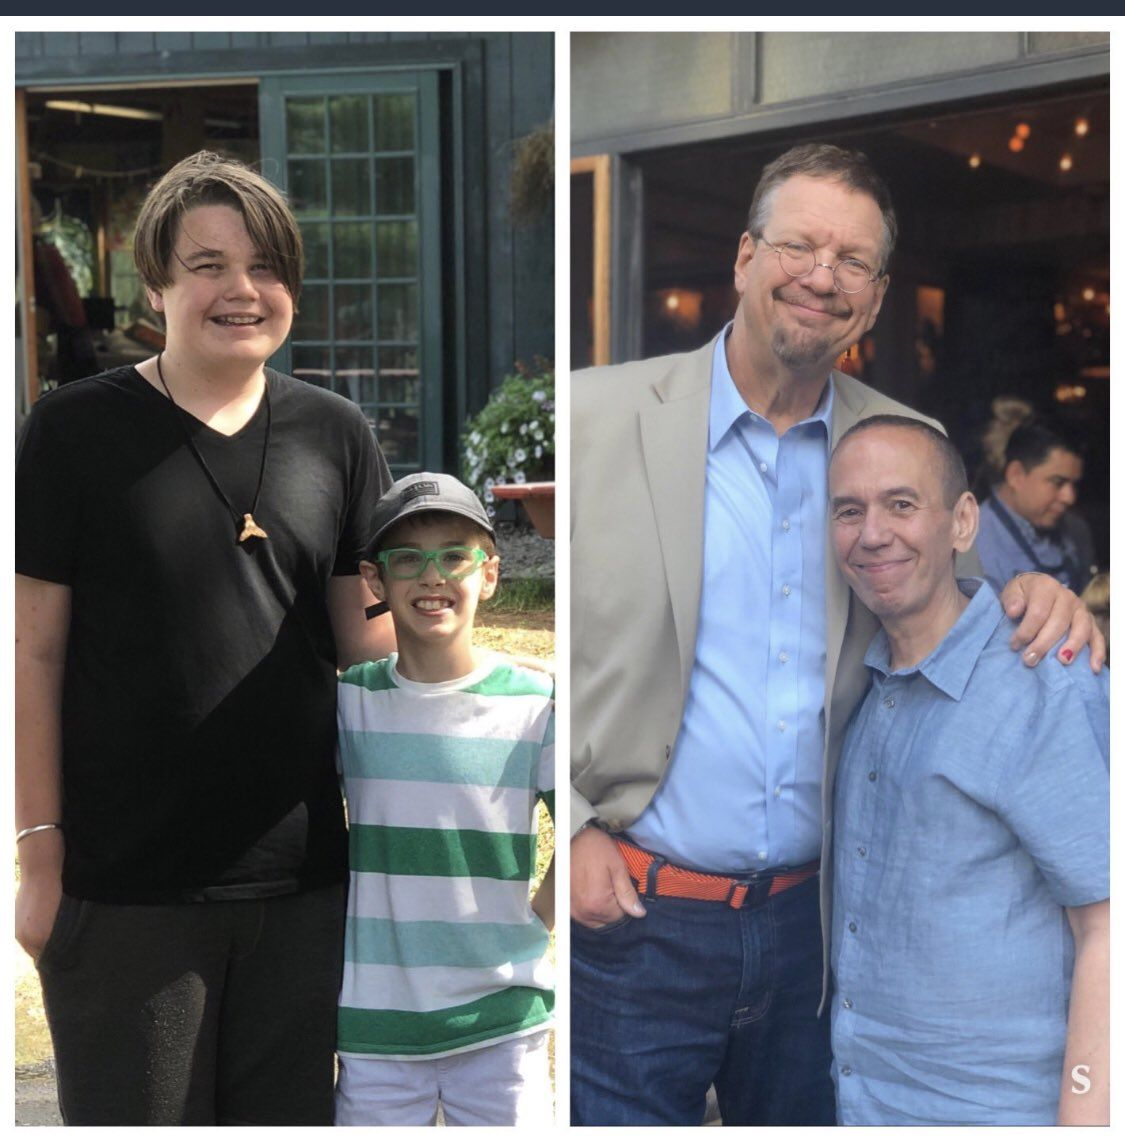 Gilbert Gottfried's son and Penn Jillette's son are friends. Guess which one is which.